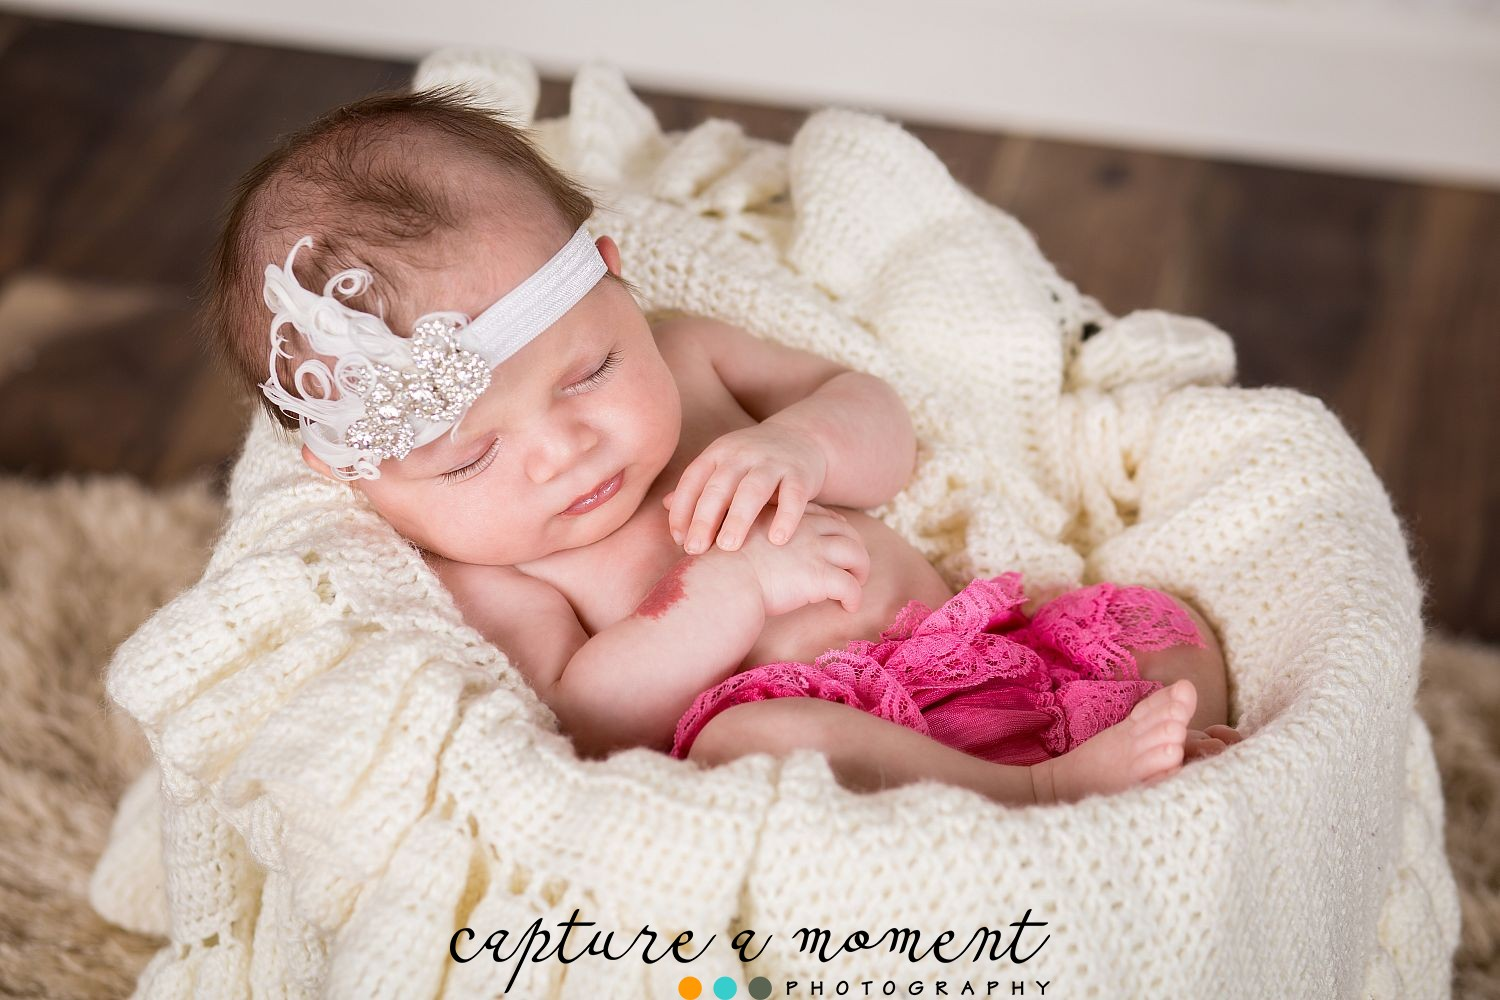 Butterflys & Bows for this Newborn